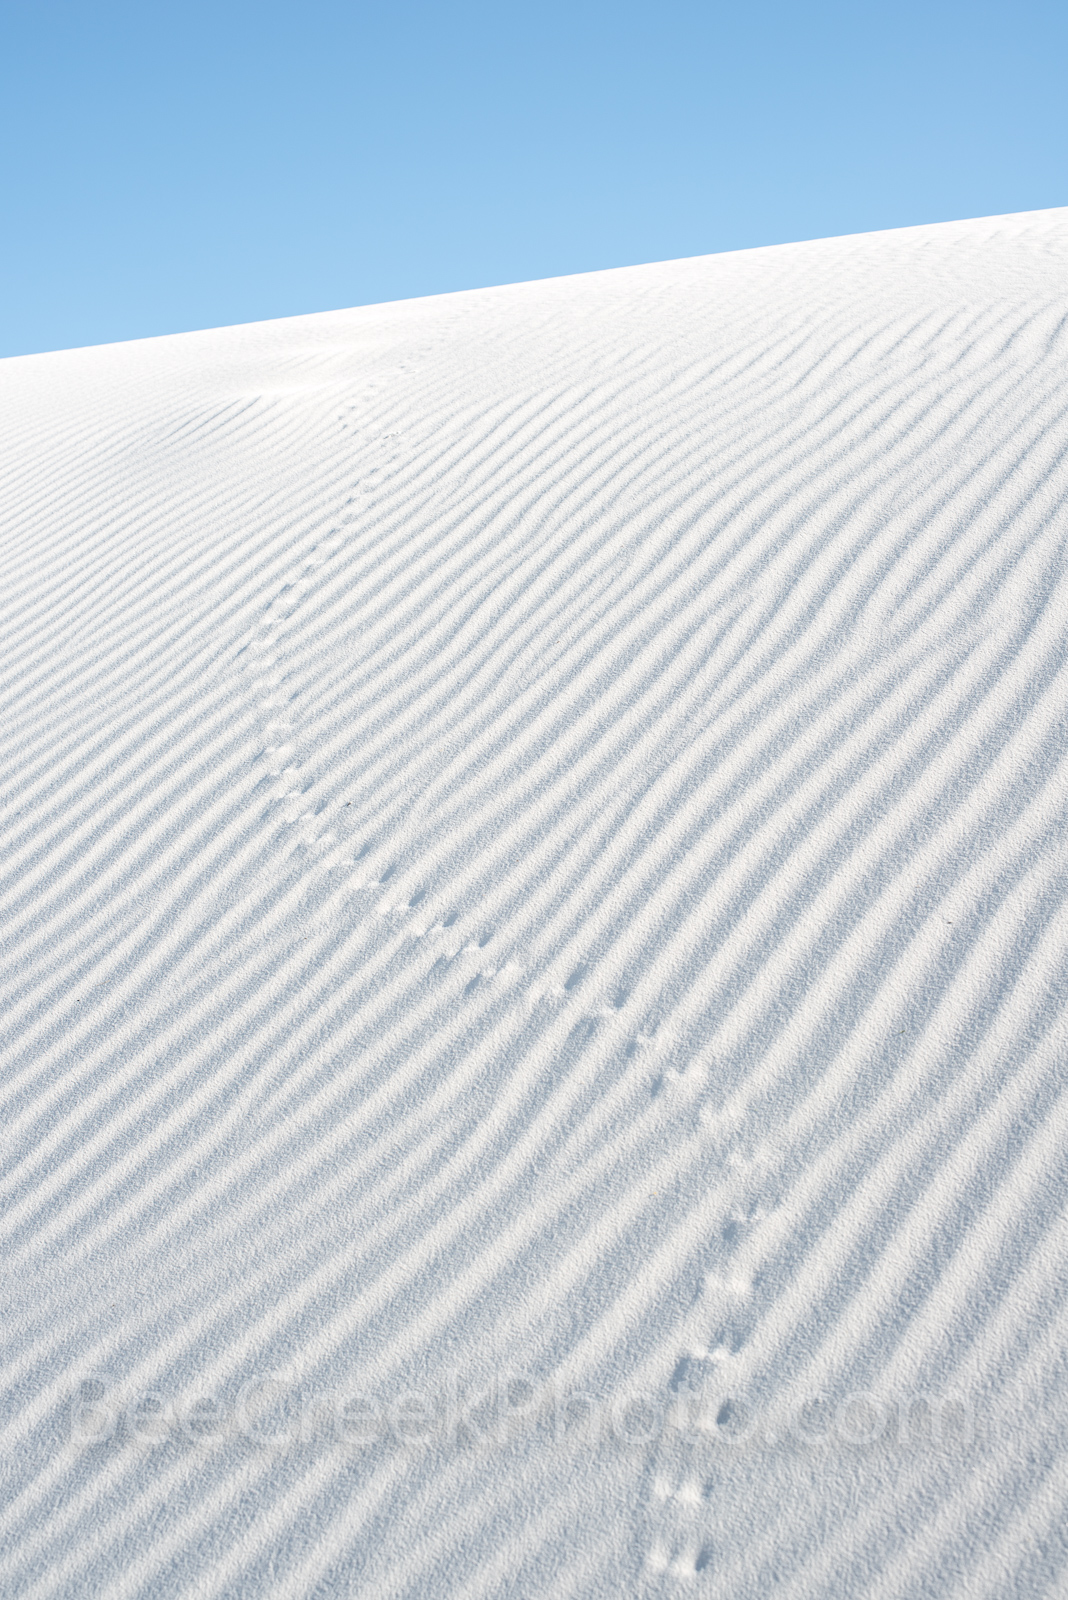 White sands, new mexico, nm, tracks, sand patterns, gypsum, dunes, patterns in the sand, vertical, dune, animal., photo